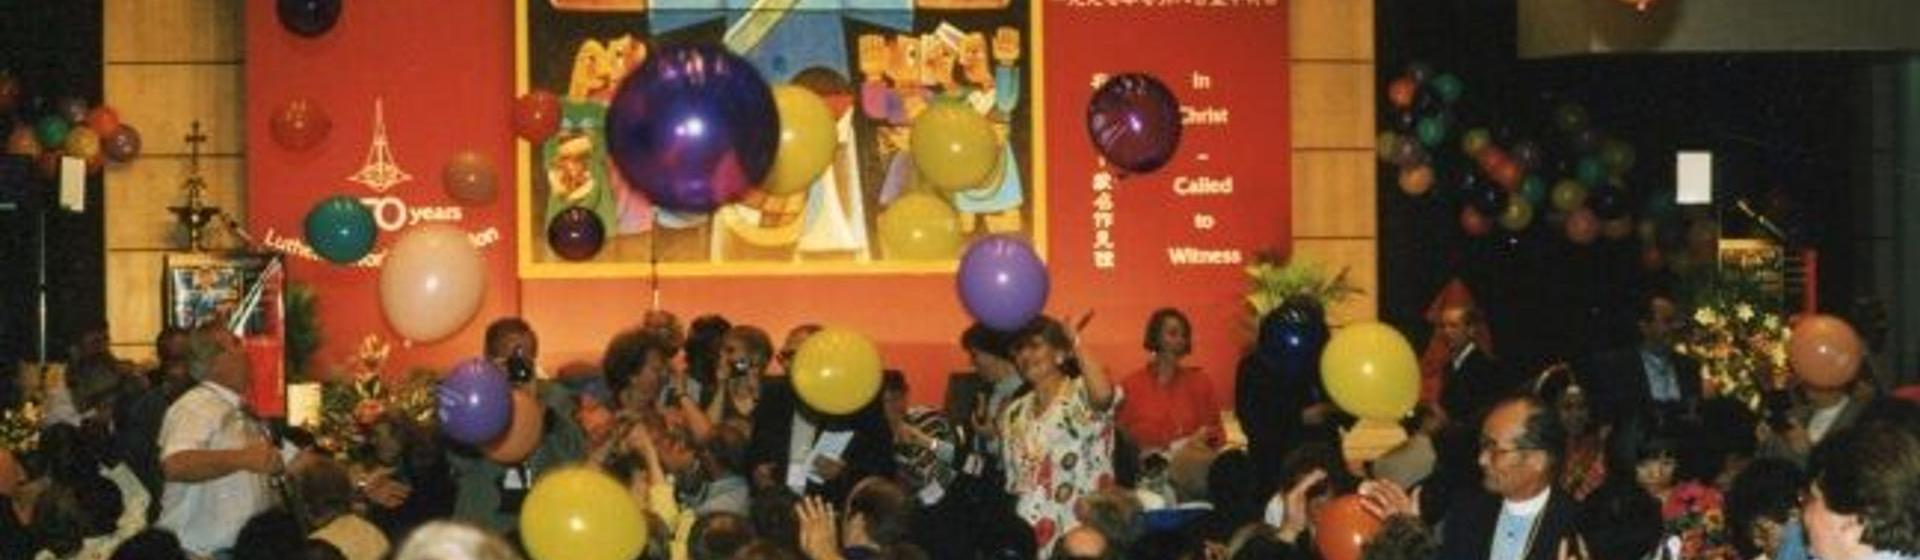 The LWF Ninth Assembly took place in Hong Kong, China in 1997. Photo: LWF Archives